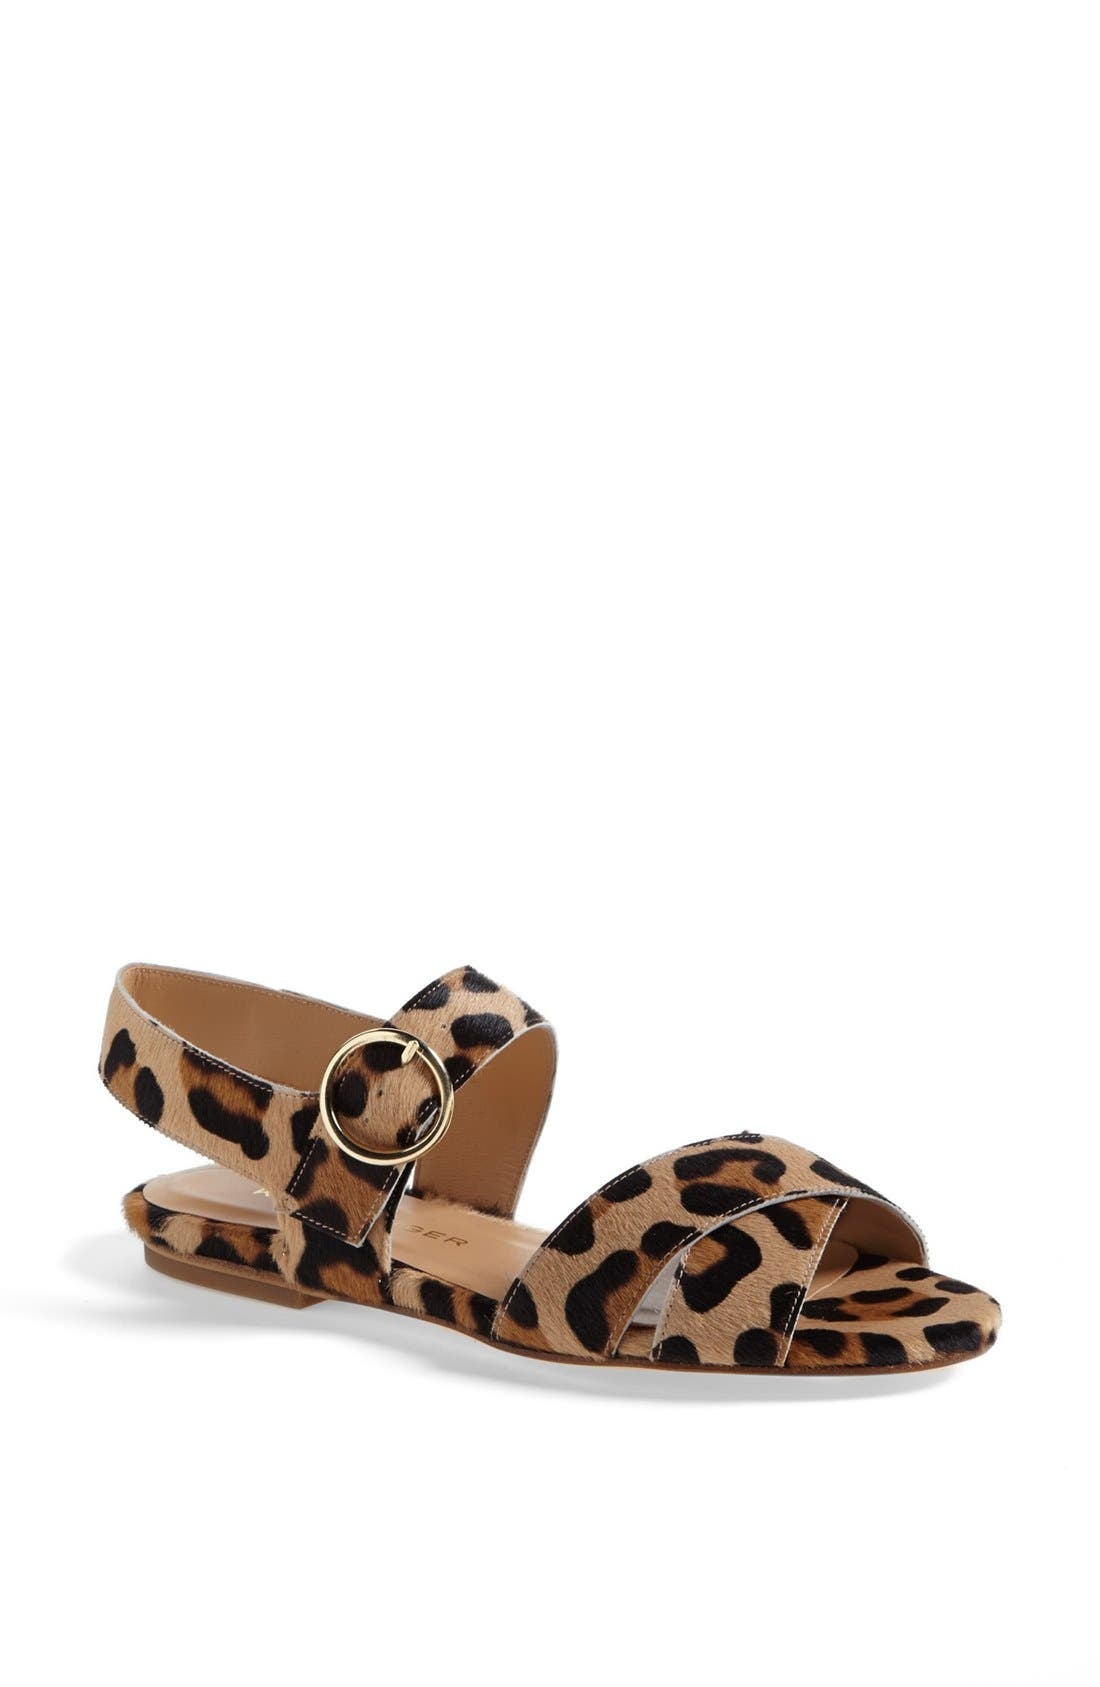 Alternate Image 1 Selected - Kurt Geiger London 'Dahlia 2' Calf Hair Sandal